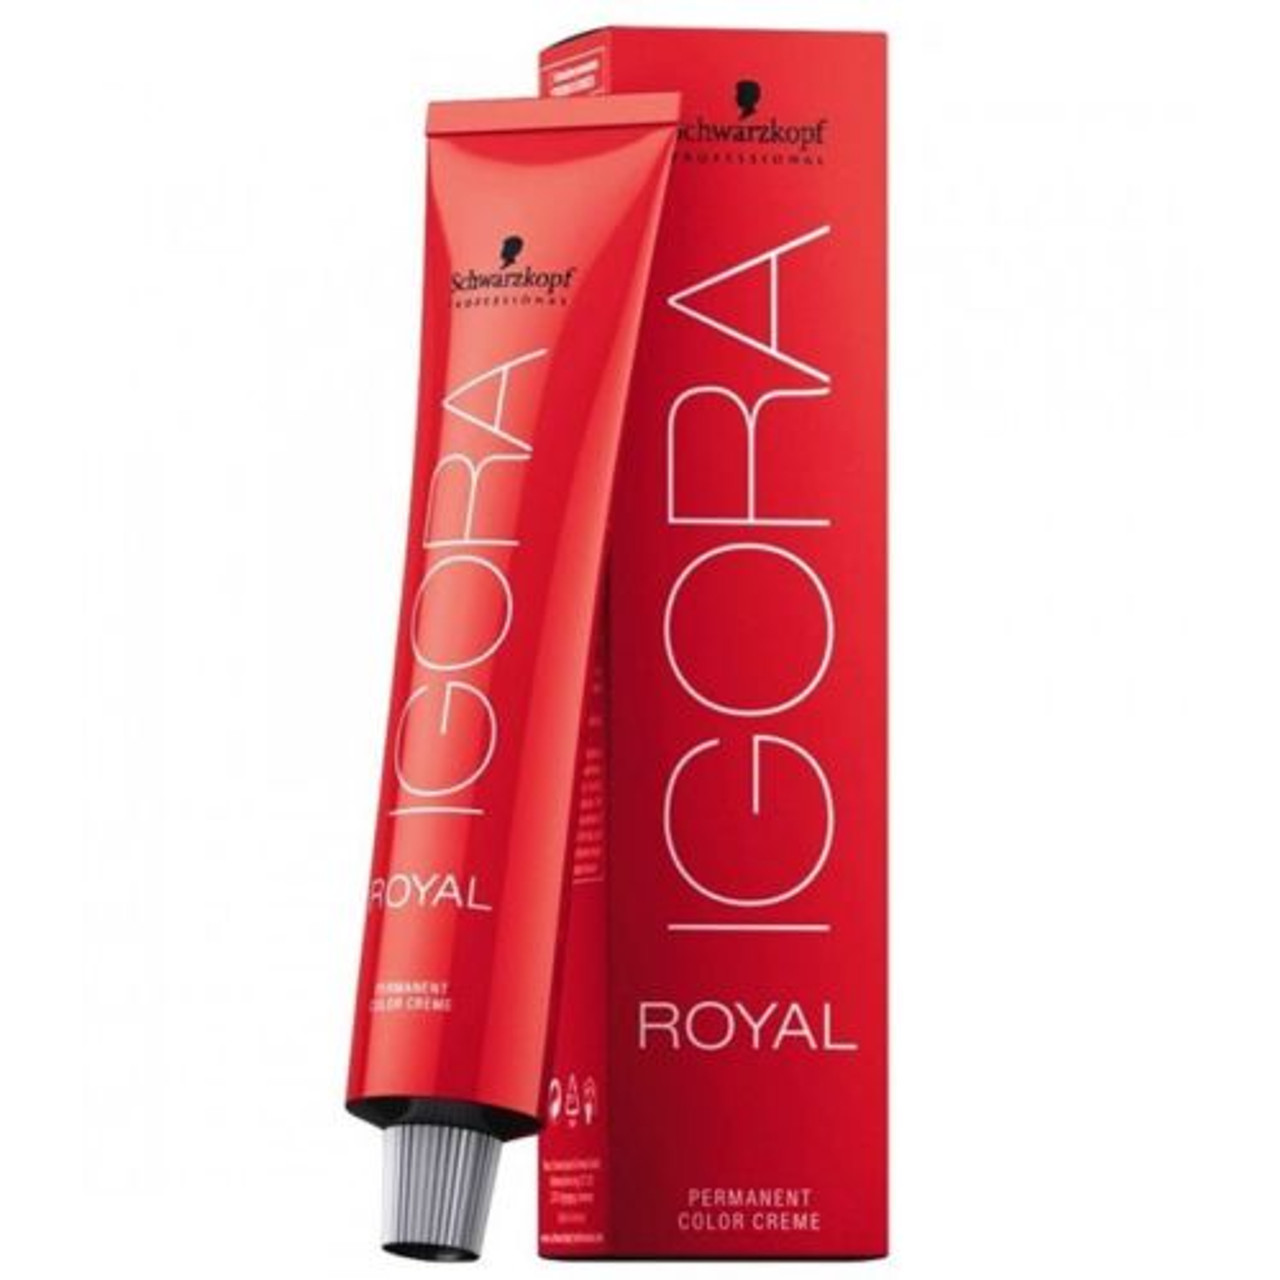 Schwarzkopf Igora Royal Permanent Color Creme - 6-4 Dark Beige blonde